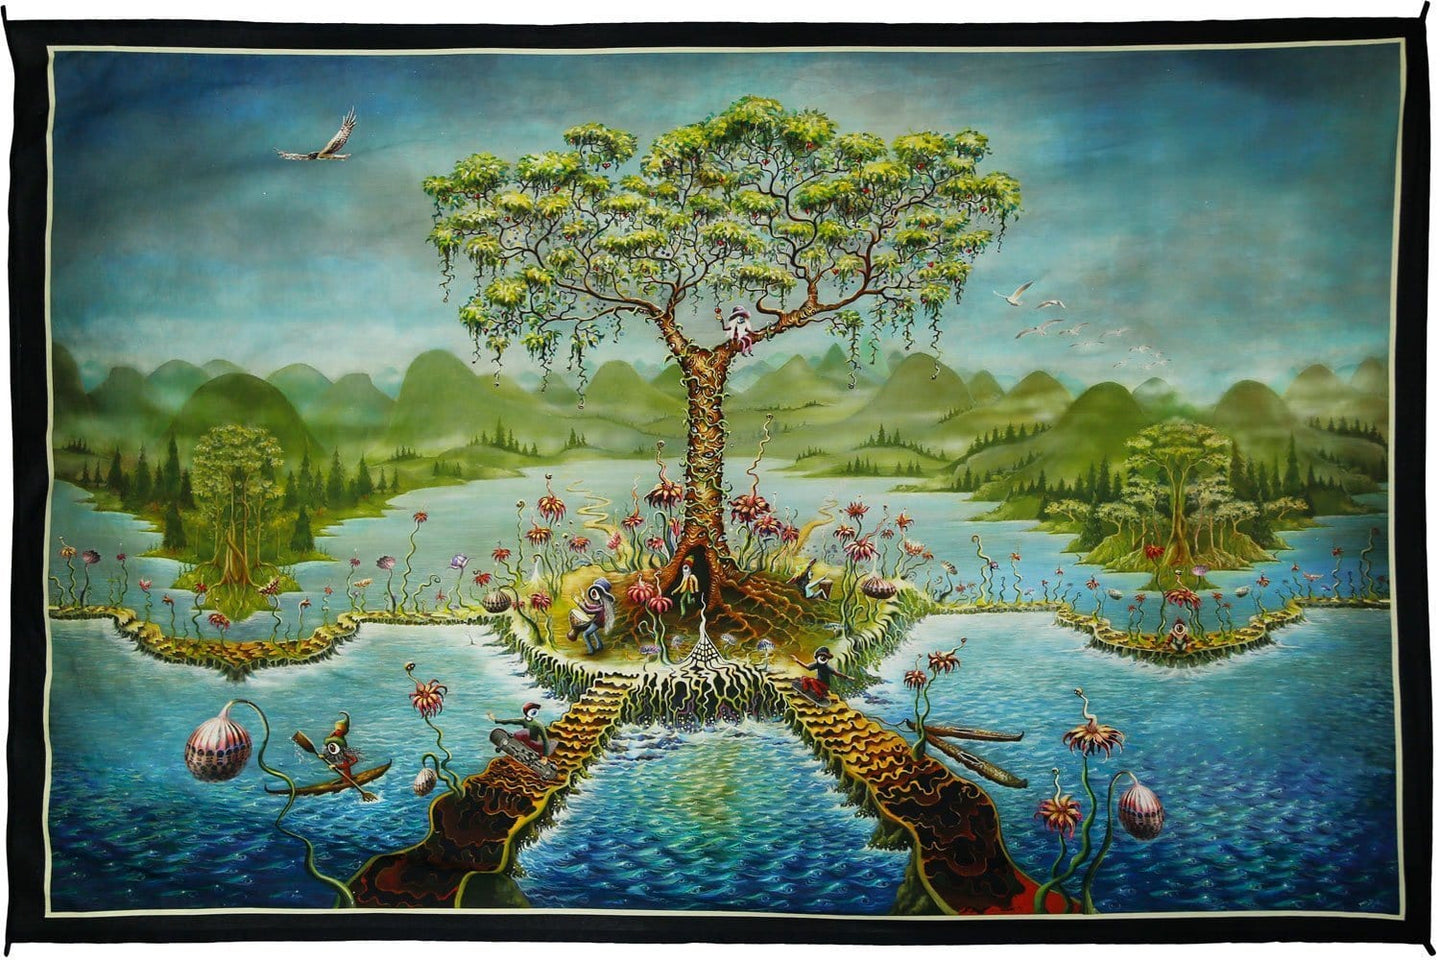 Tapestries Mike DuBois - Eyeland - Tapestry 010255